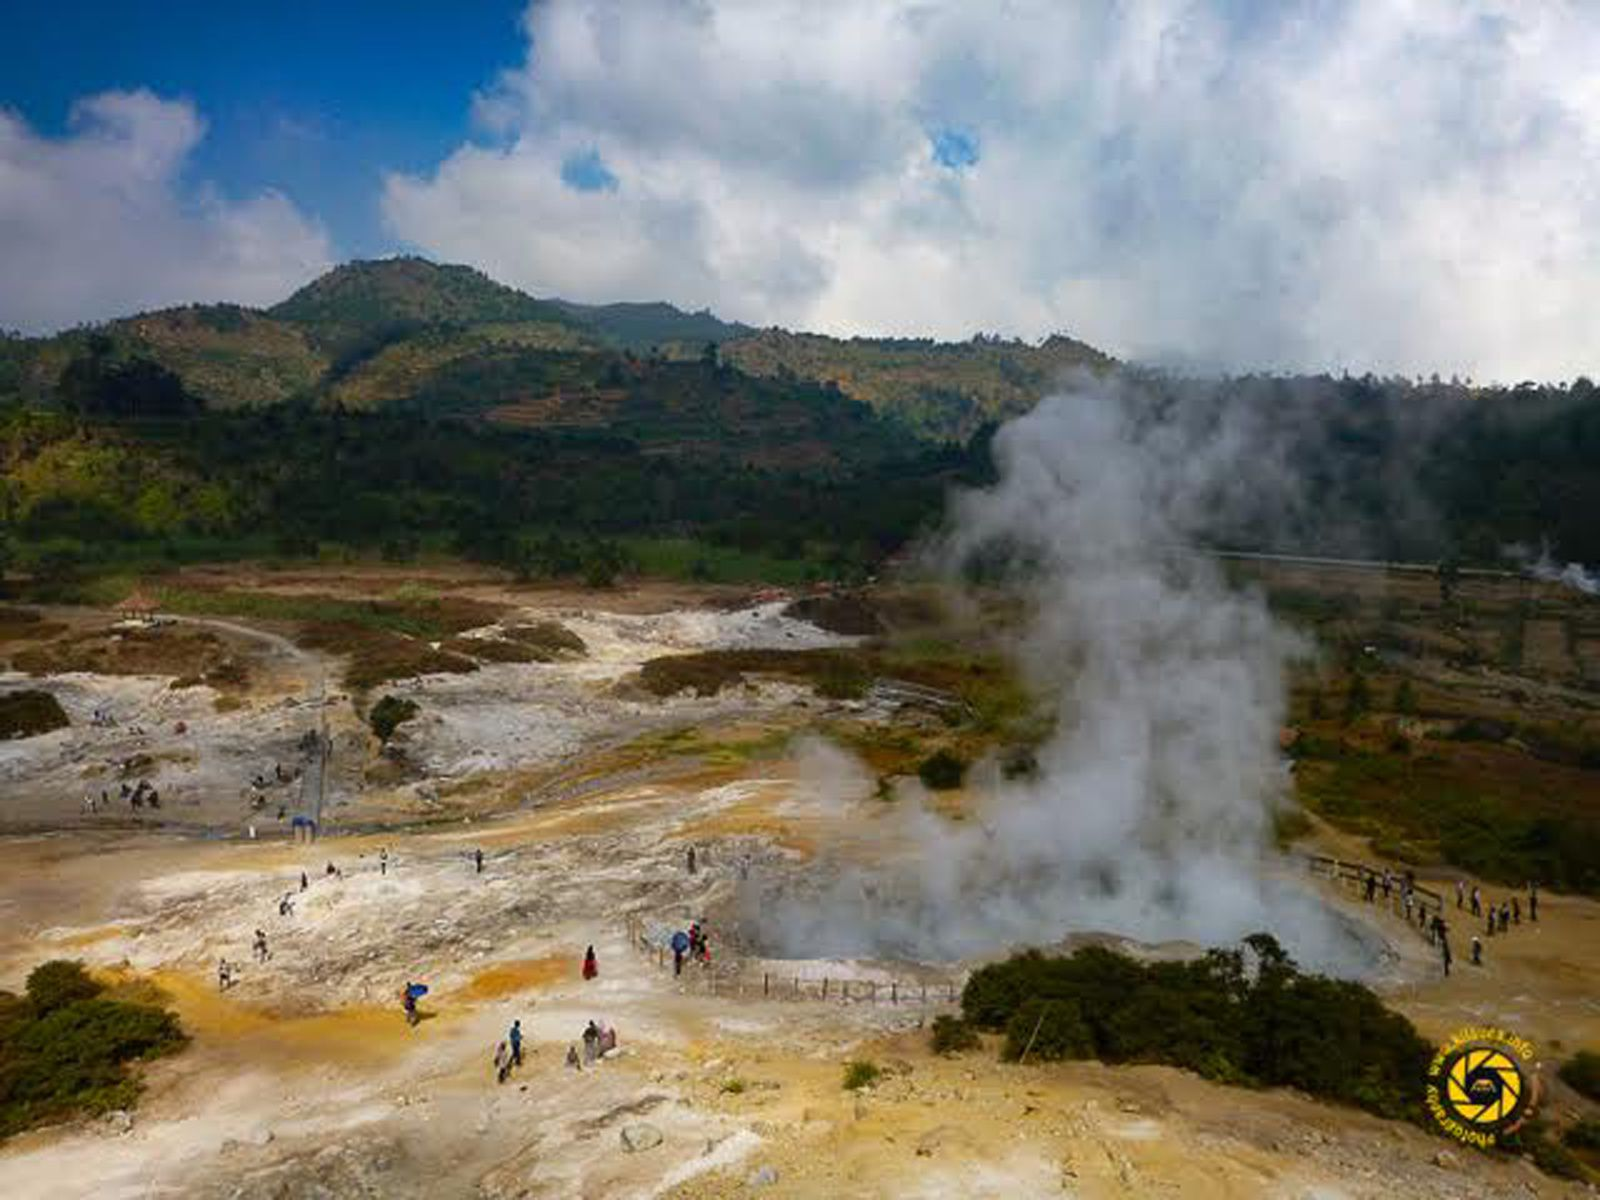 Dieng Plateau - fumarole field in the crater Sikidang - Photo © 2015 Jean-Michel Mestdagh